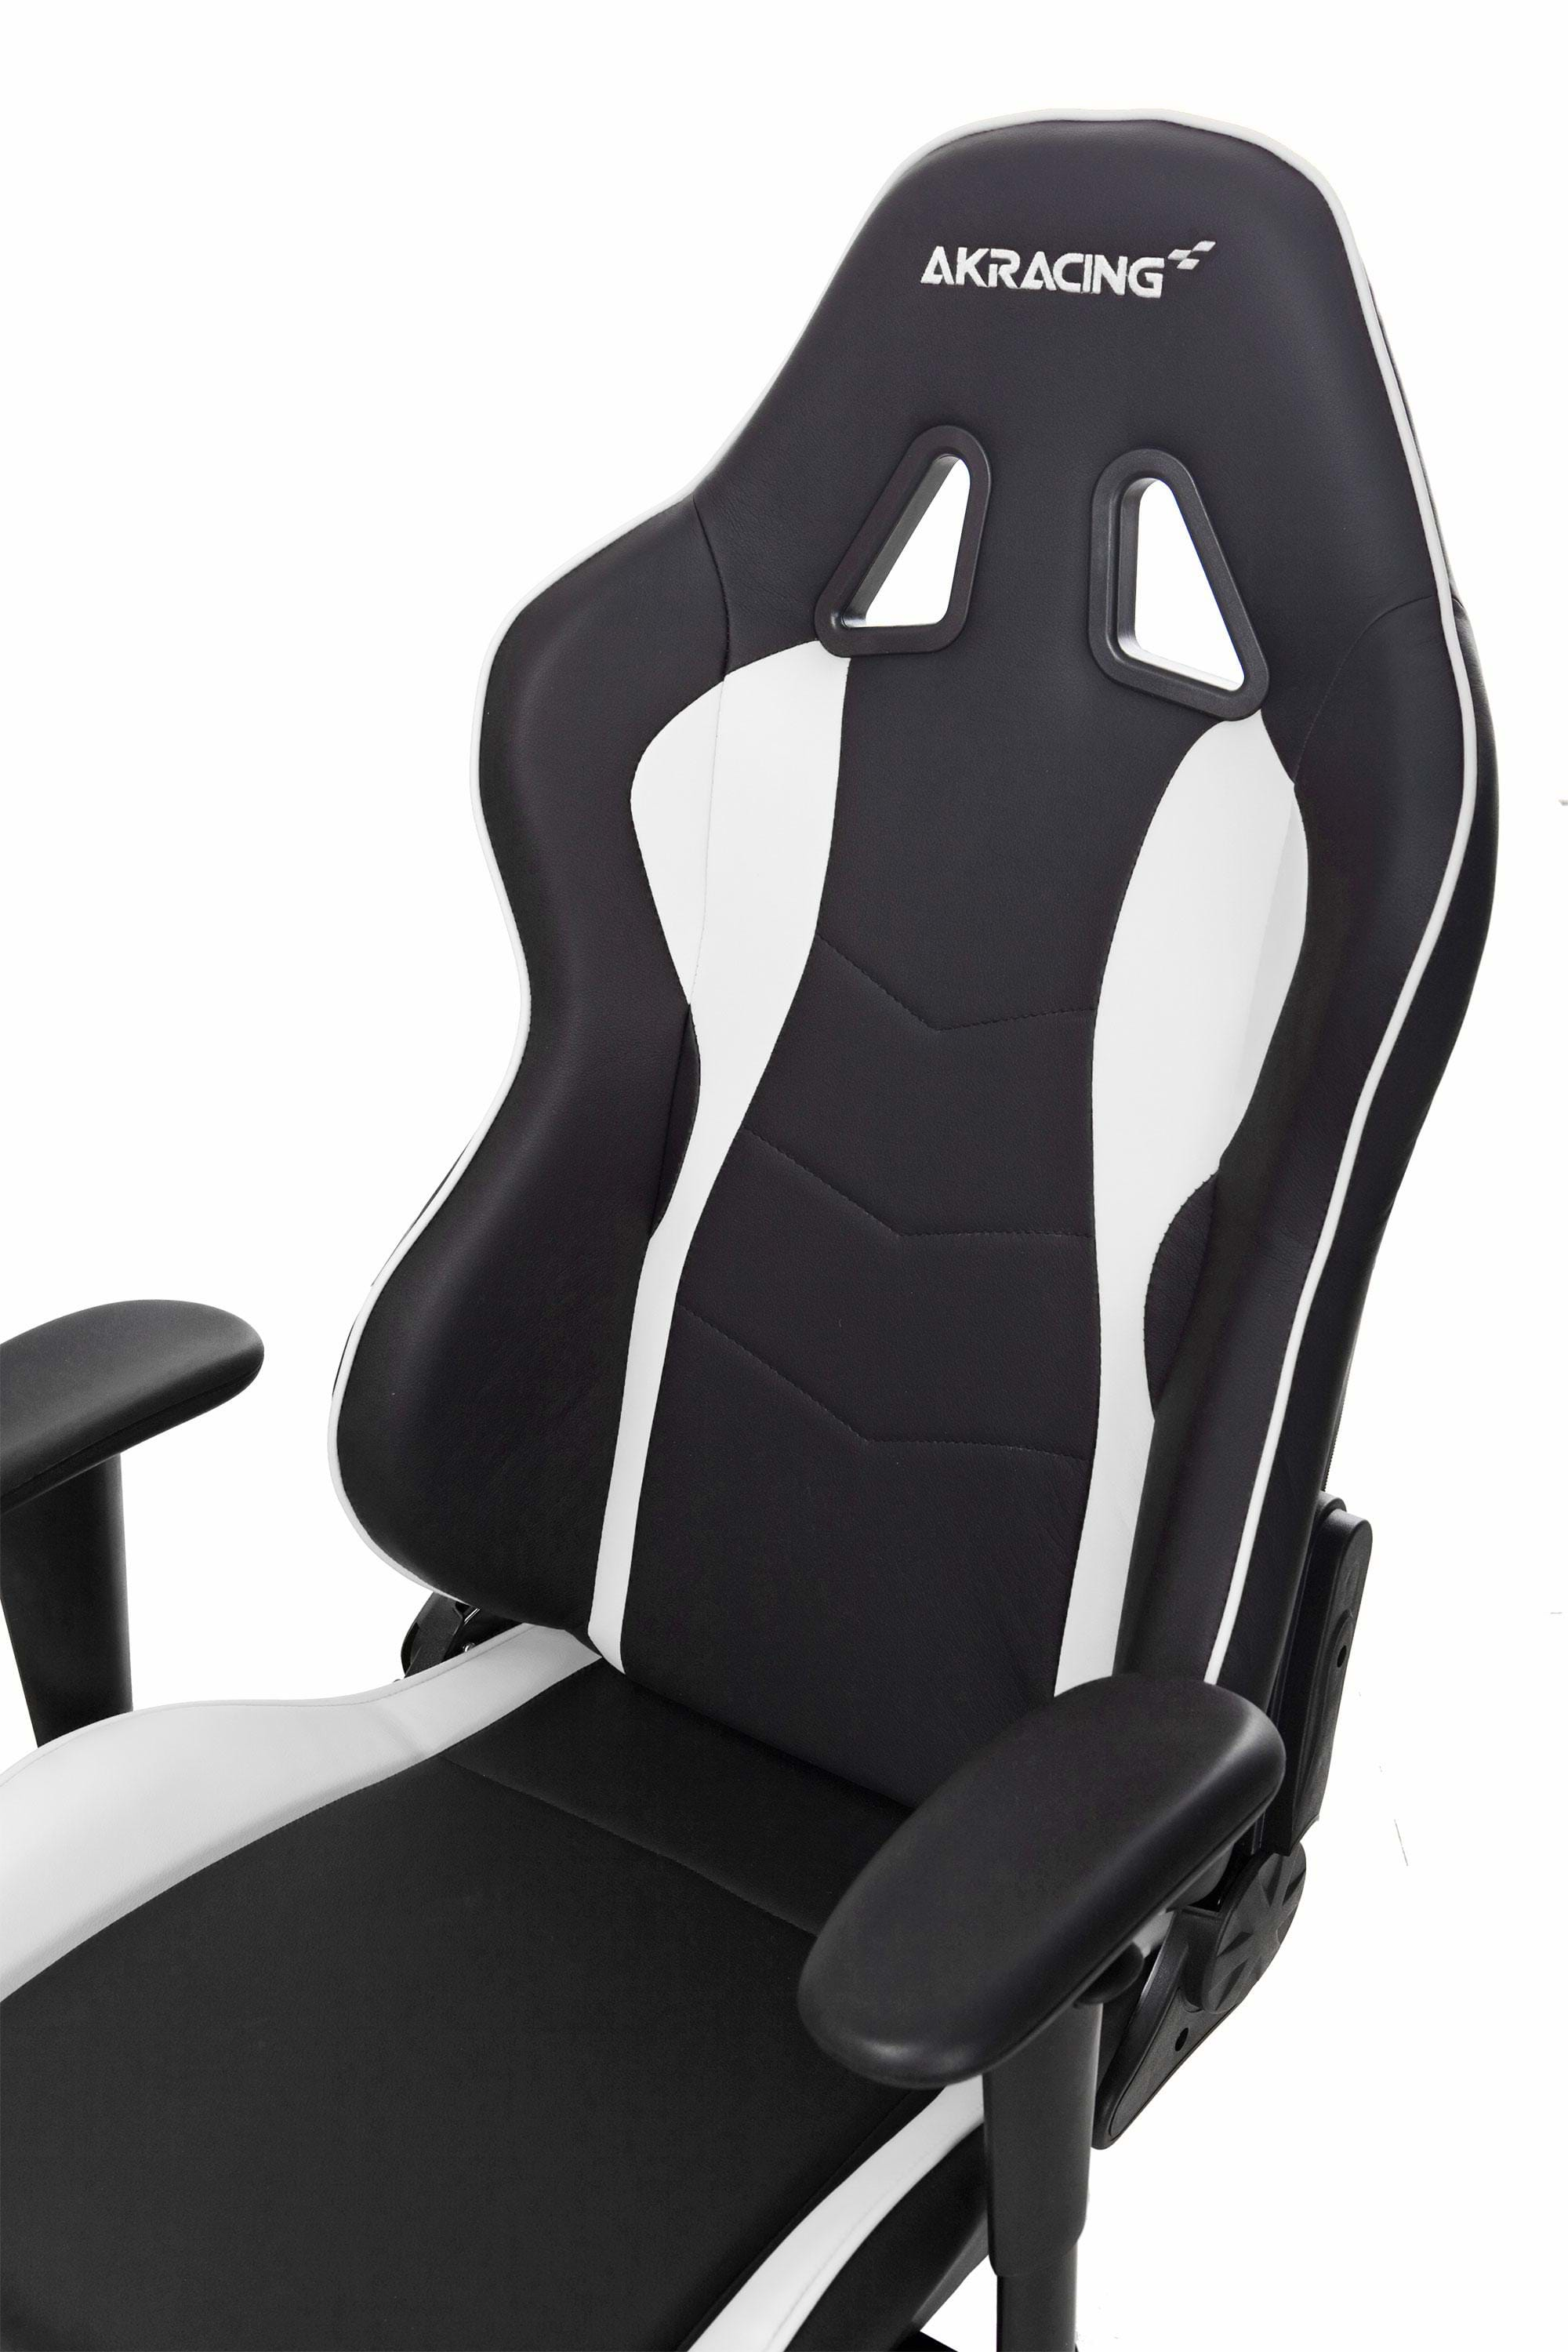 akracing nitro gaming stuhl wei gaming stuhl schwarz wei pu leder bis zu 150 kg. Black Bedroom Furniture Sets. Home Design Ideas